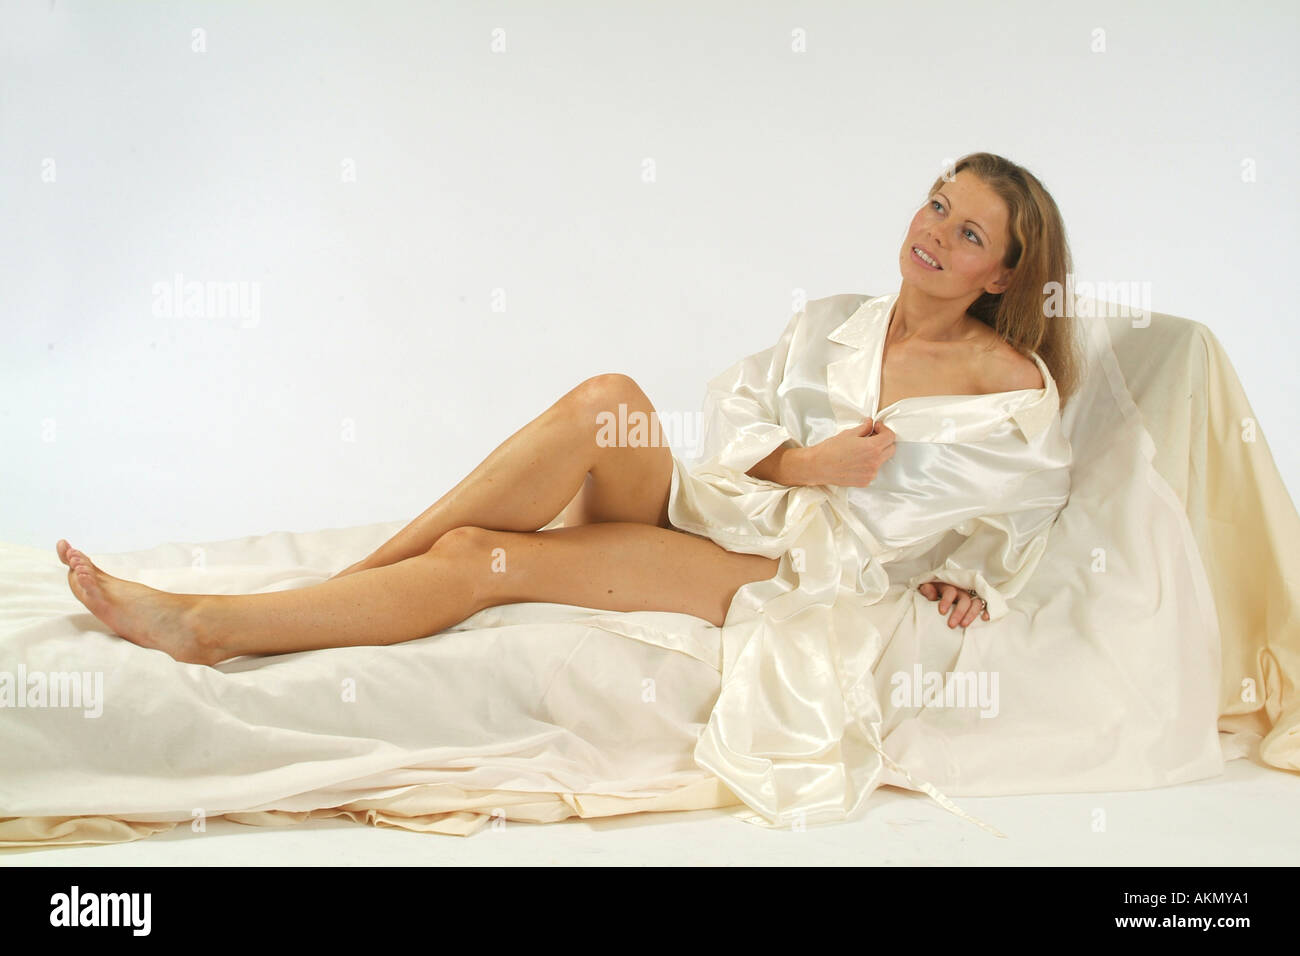 e315cfb662 A girl in her twenties wearing a white satin robe and sitting on a bed  looking